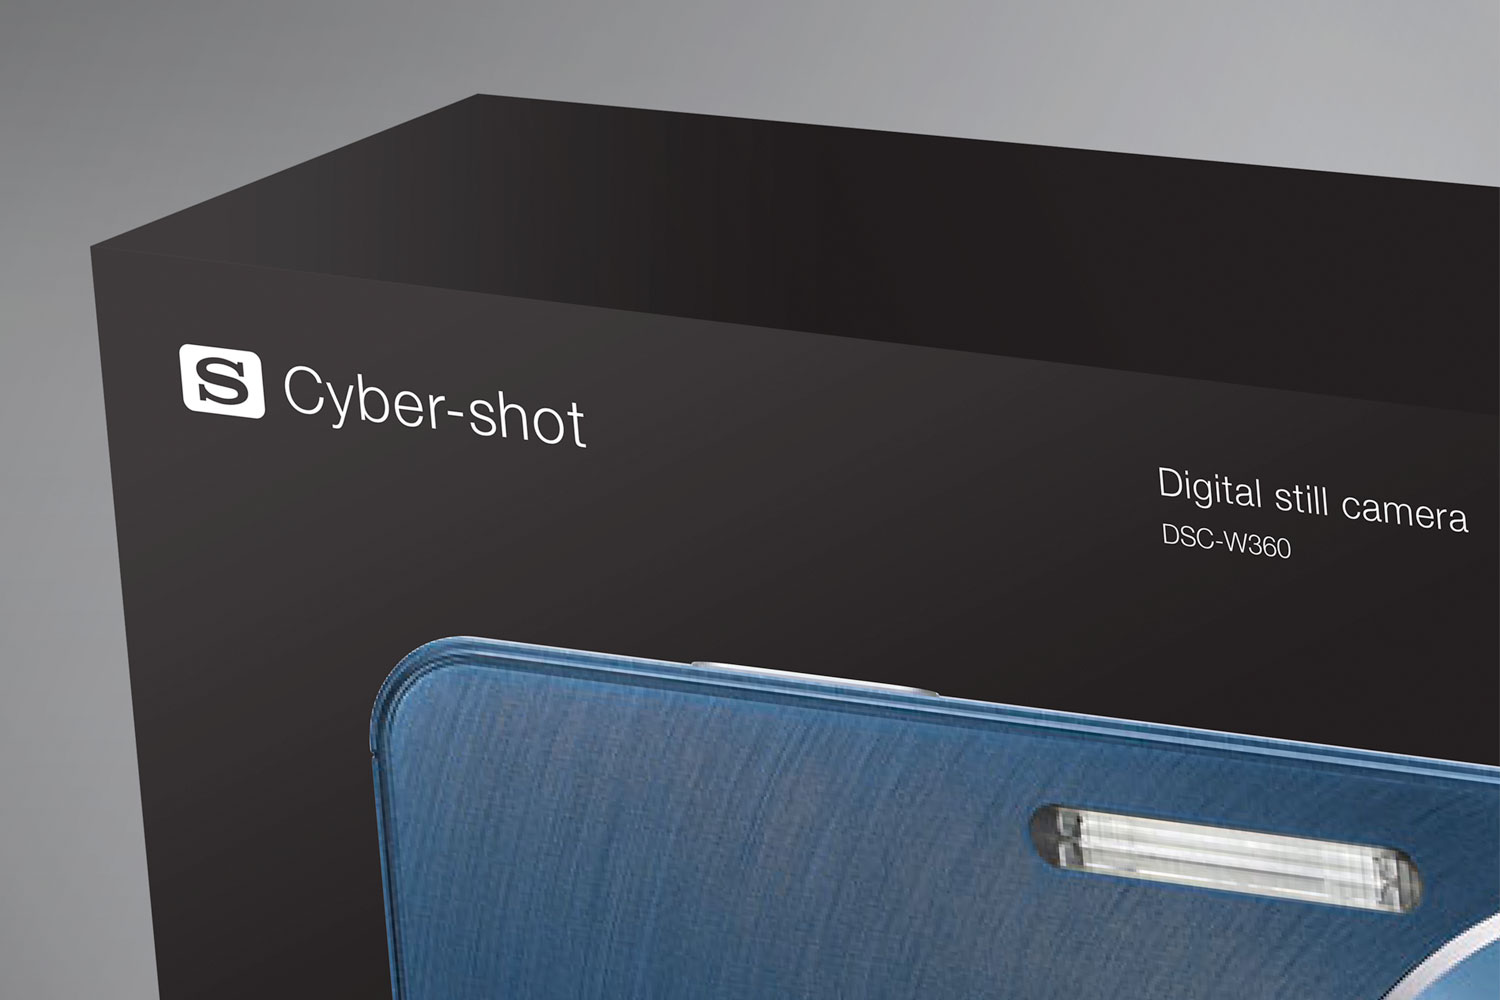 Sony Cyber-shot package close-up